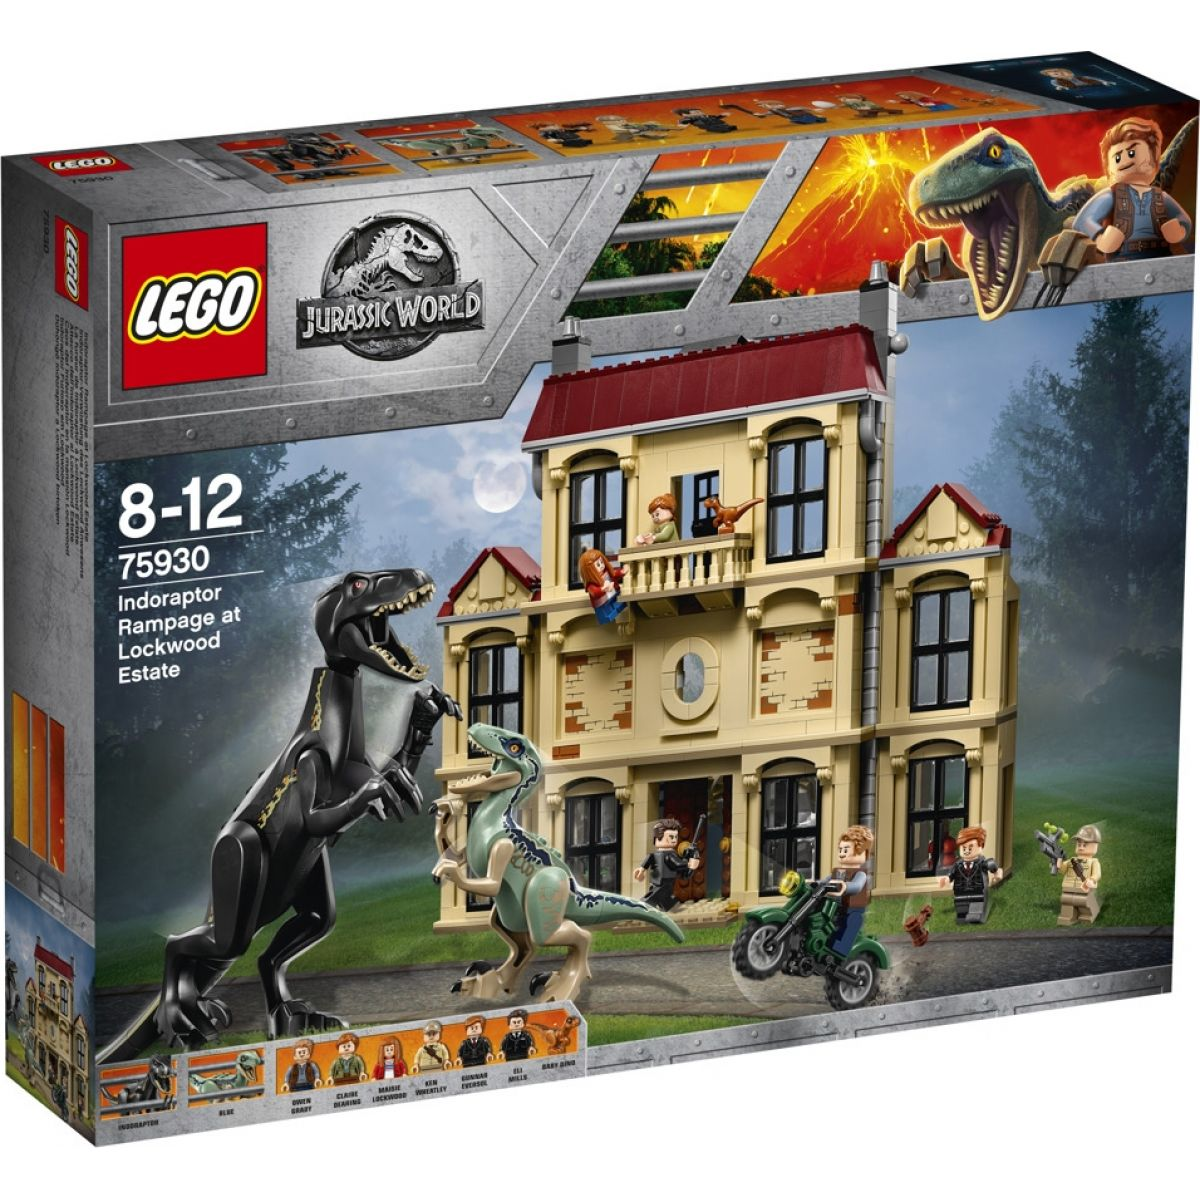 LEGO Jurassic World 75930 Řádění Indoraptora v Lockwoodu